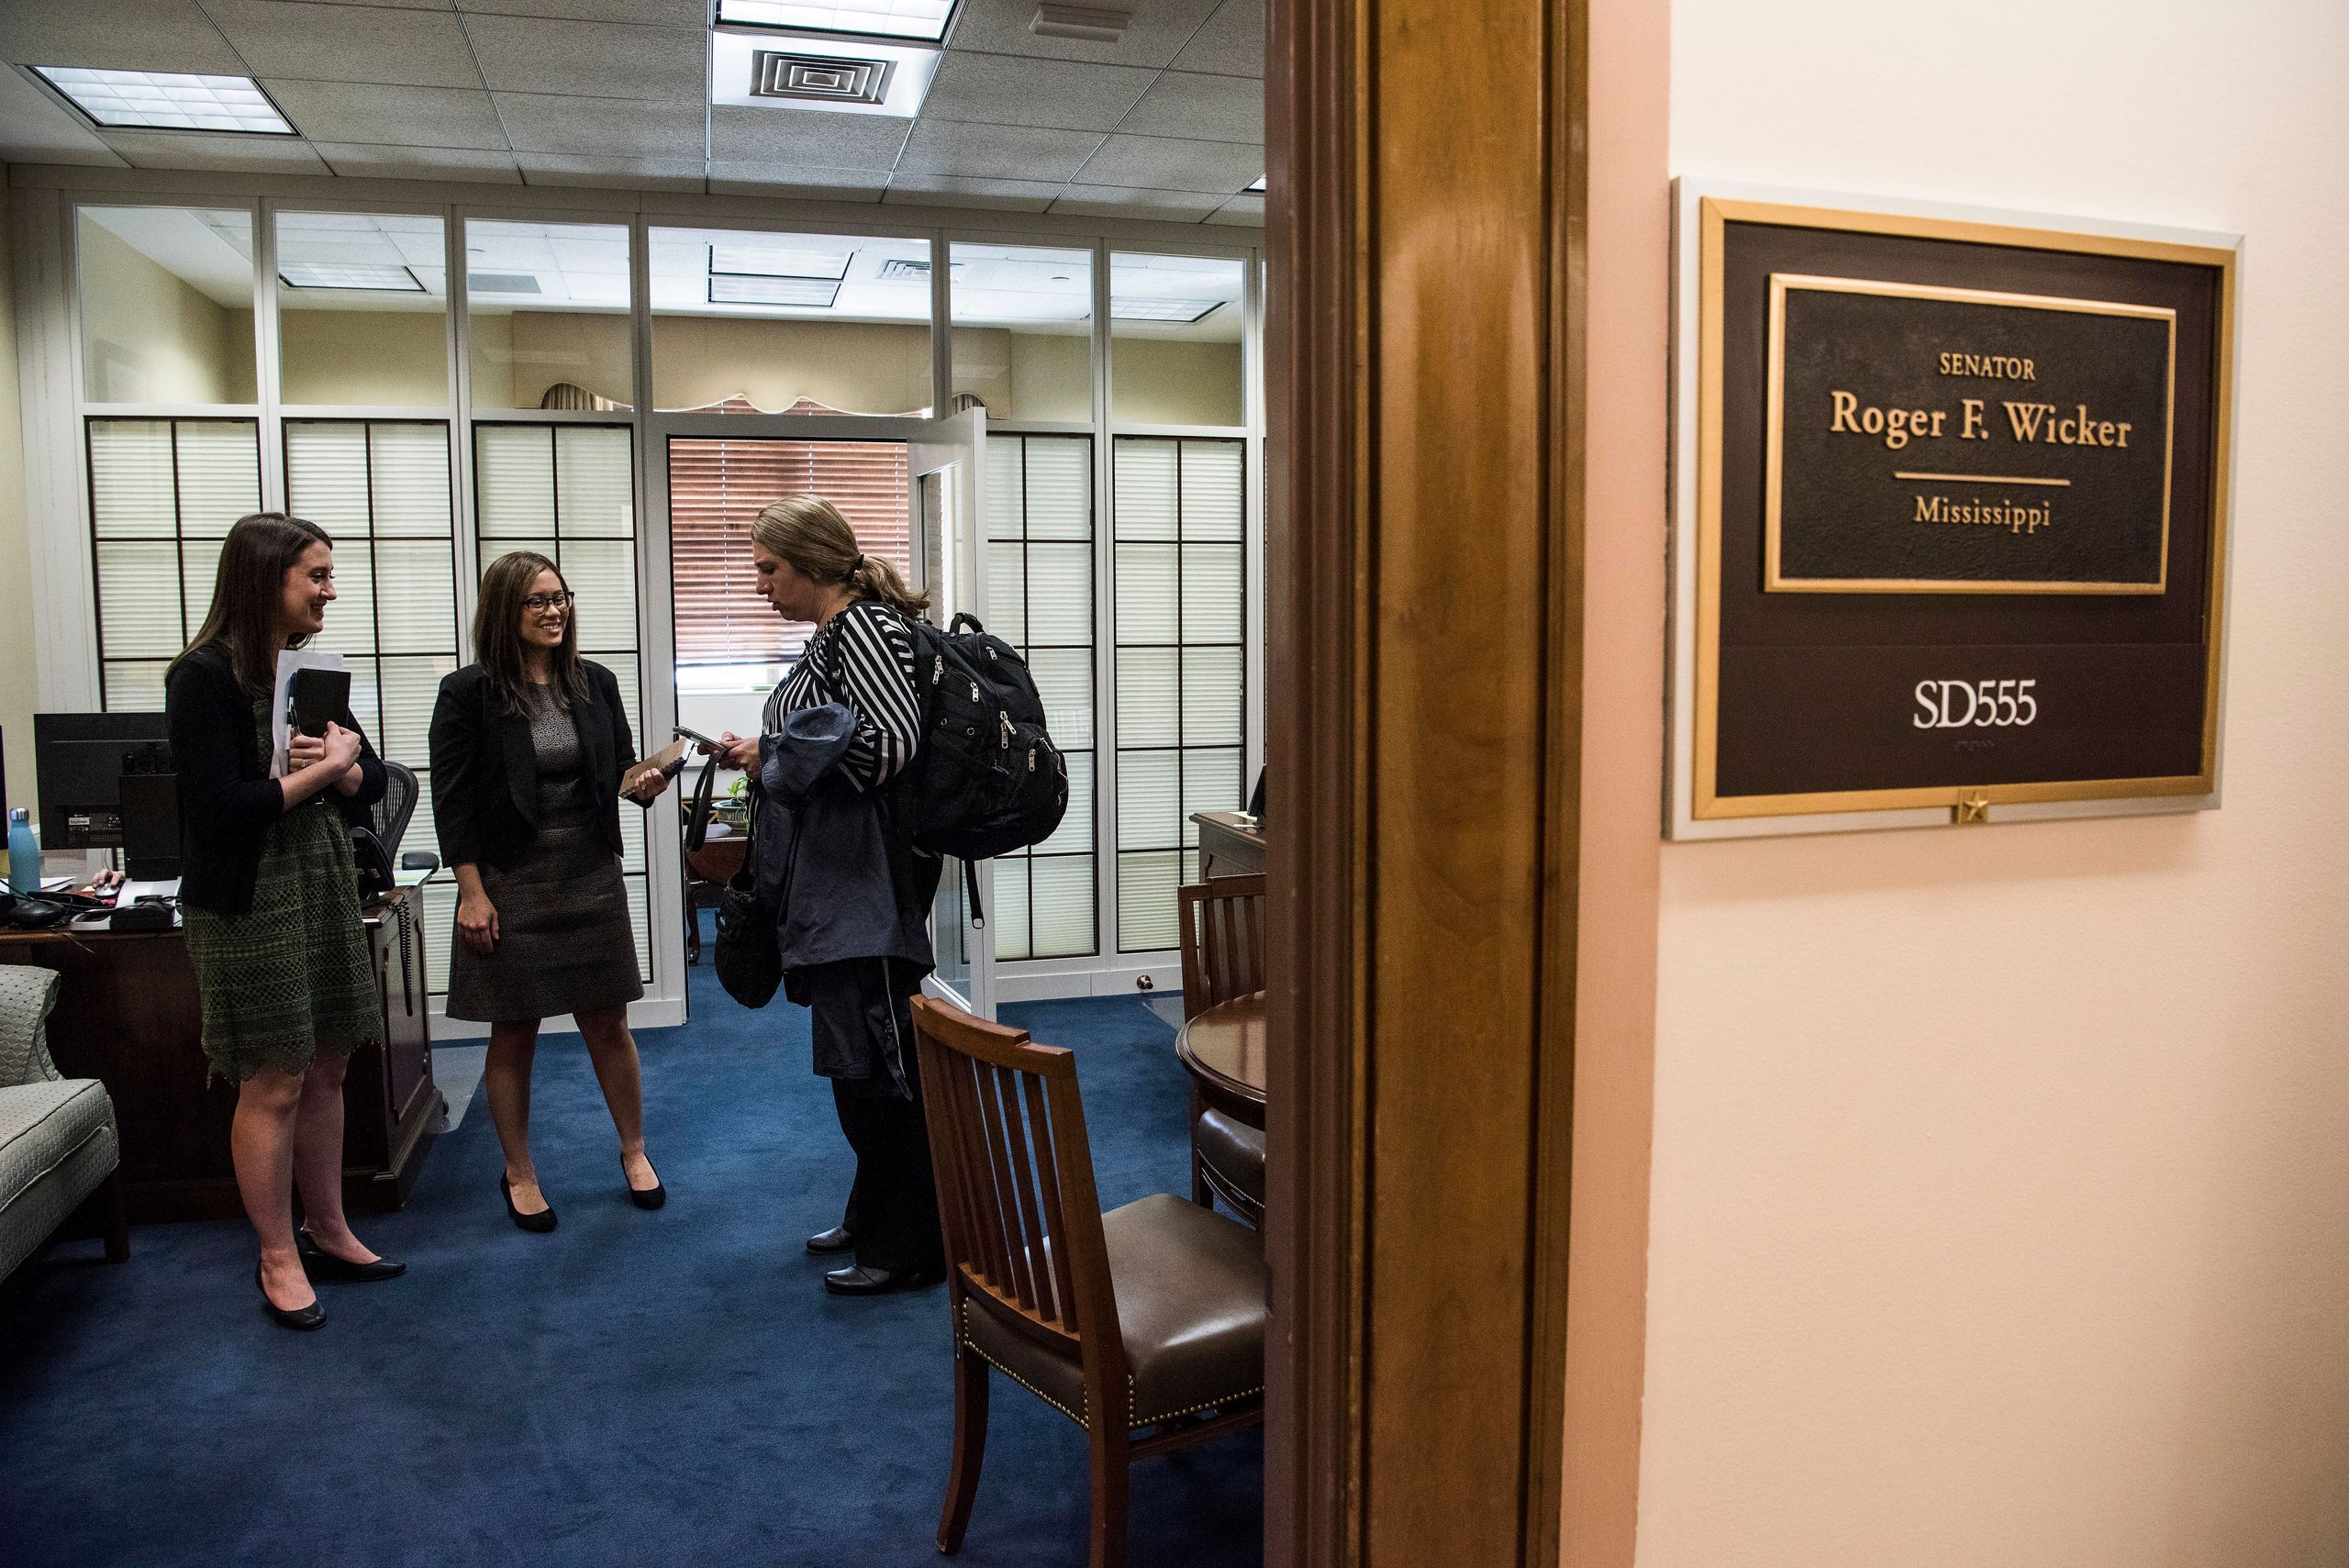 Amber lobbies aides for Sen. Roger Wicker (R-Miss.) in his office at the Dirksen Senate Office Building on Capitol Hill. The